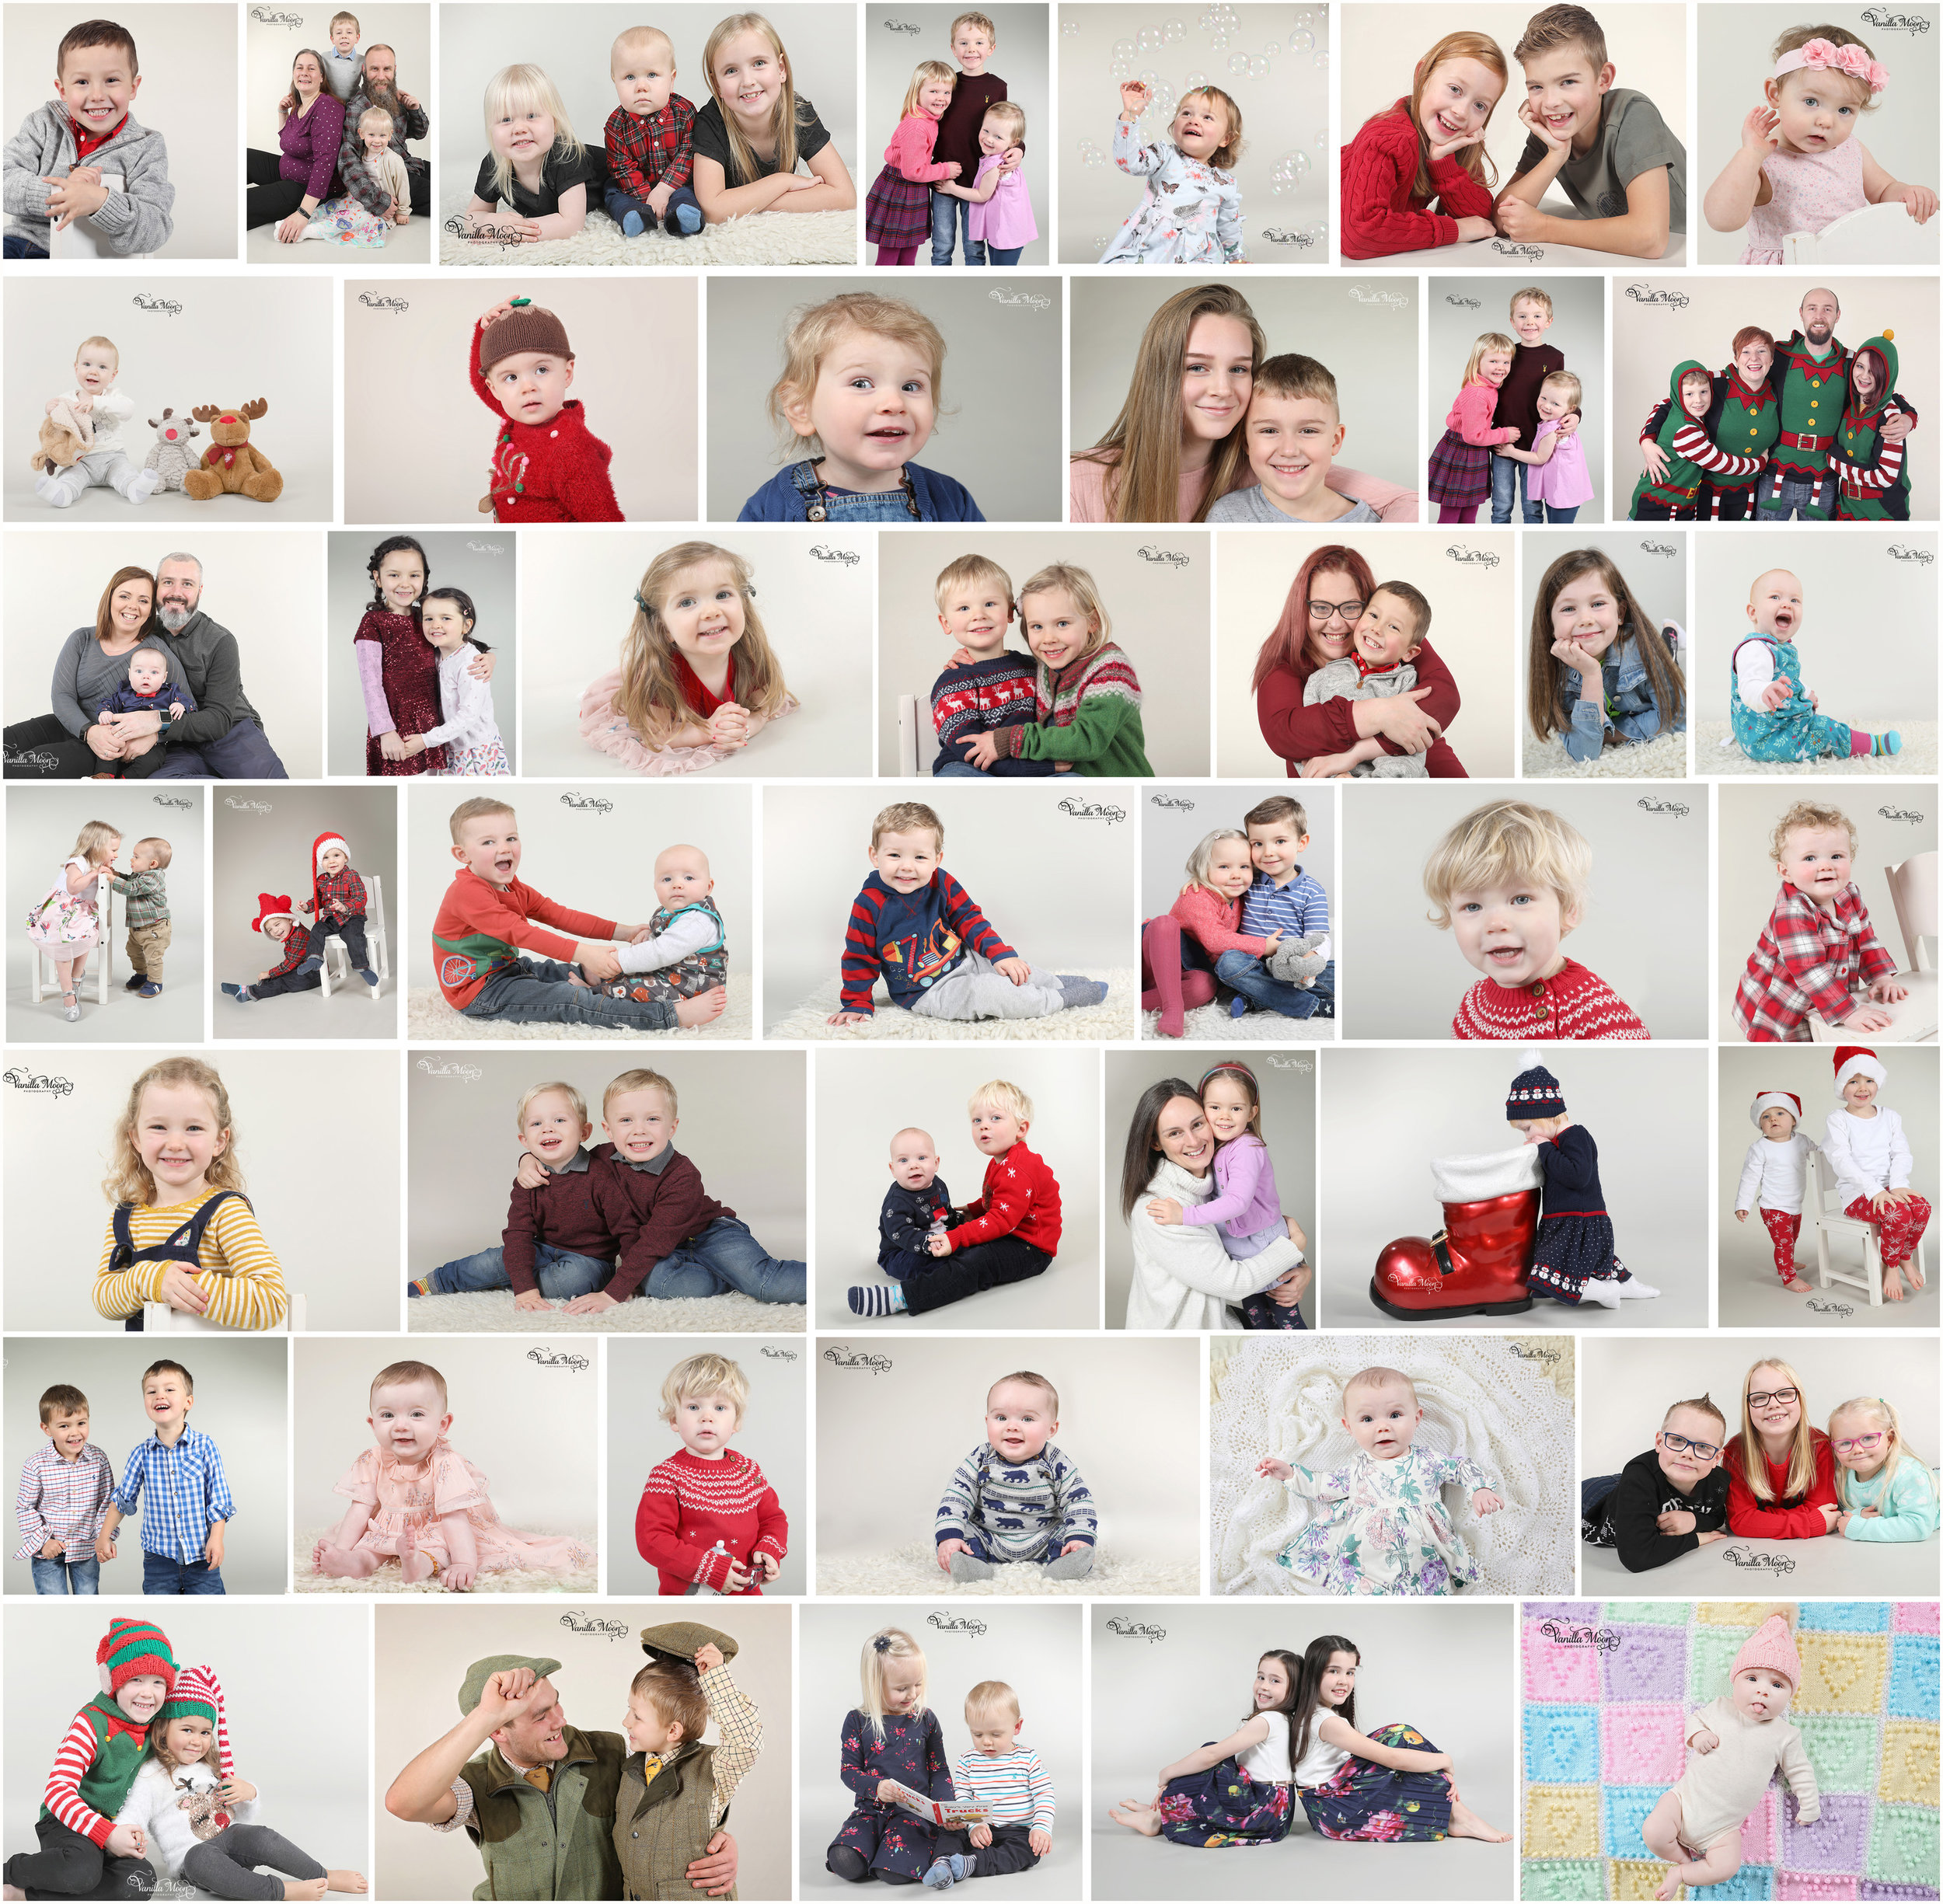 Christmas Portrait Photography Scottish Borders, Scotland